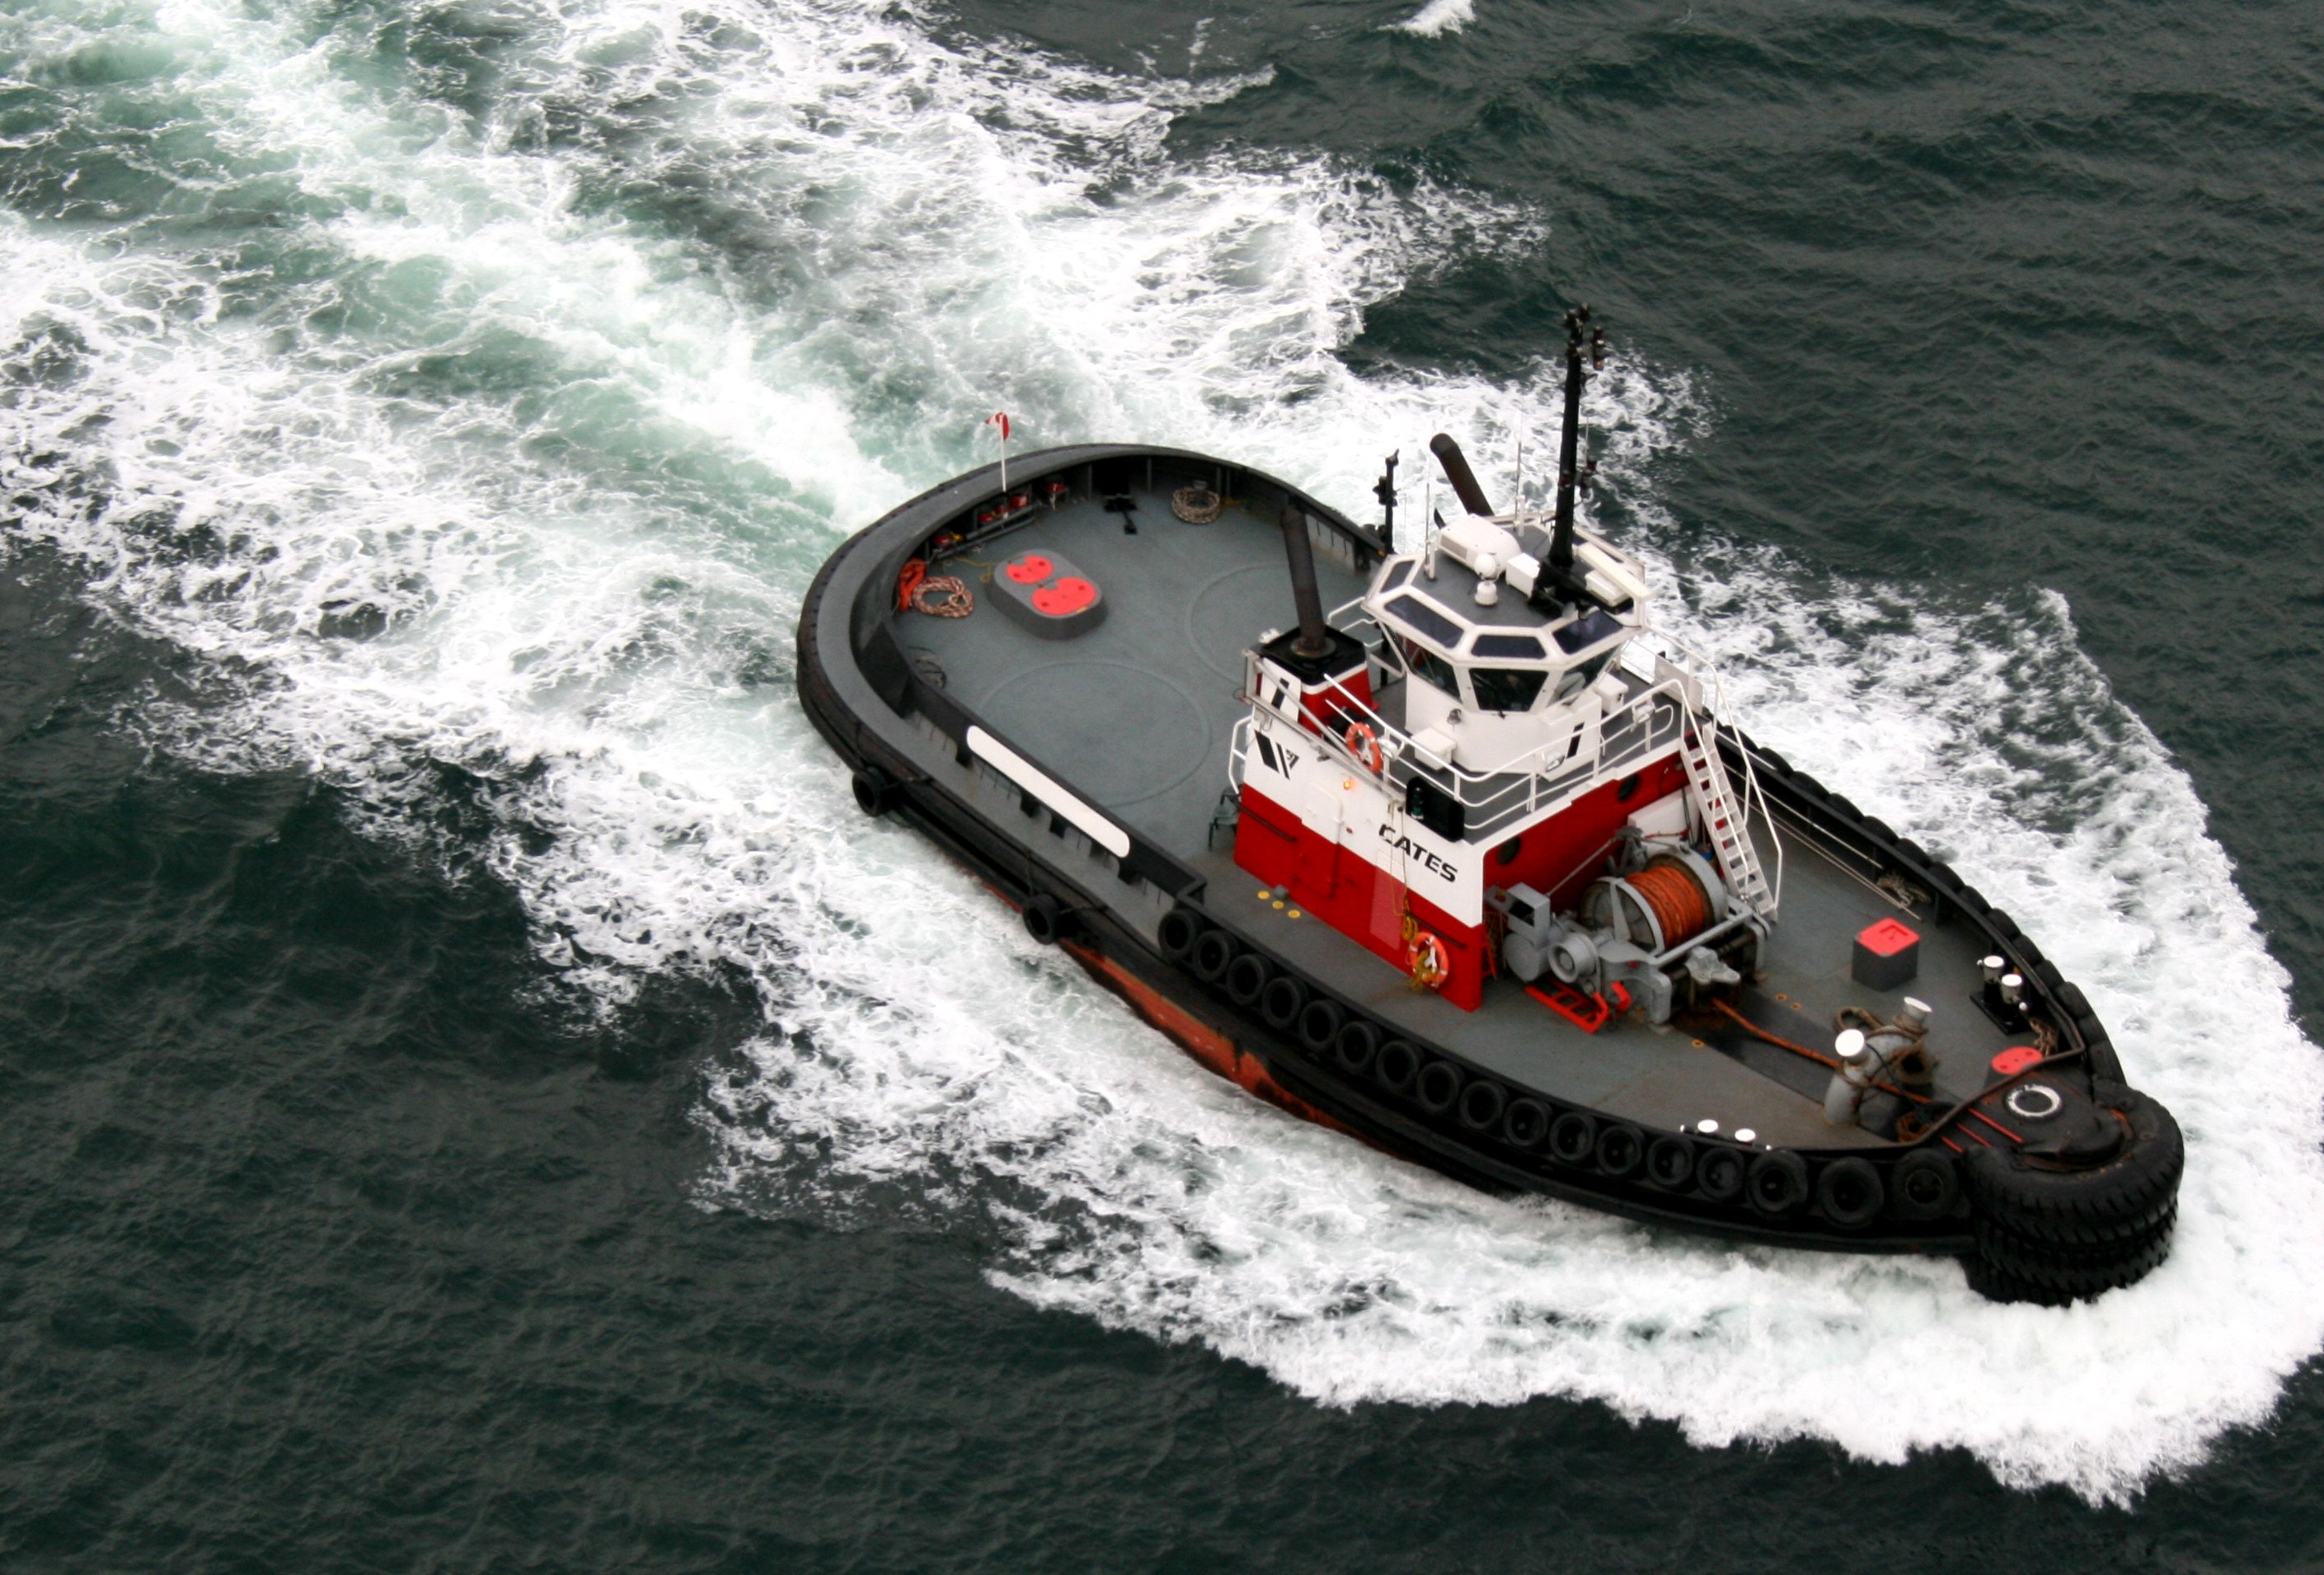 File:Cates Harbour Tug number 1 -a.jpg - Wikimedia Commons